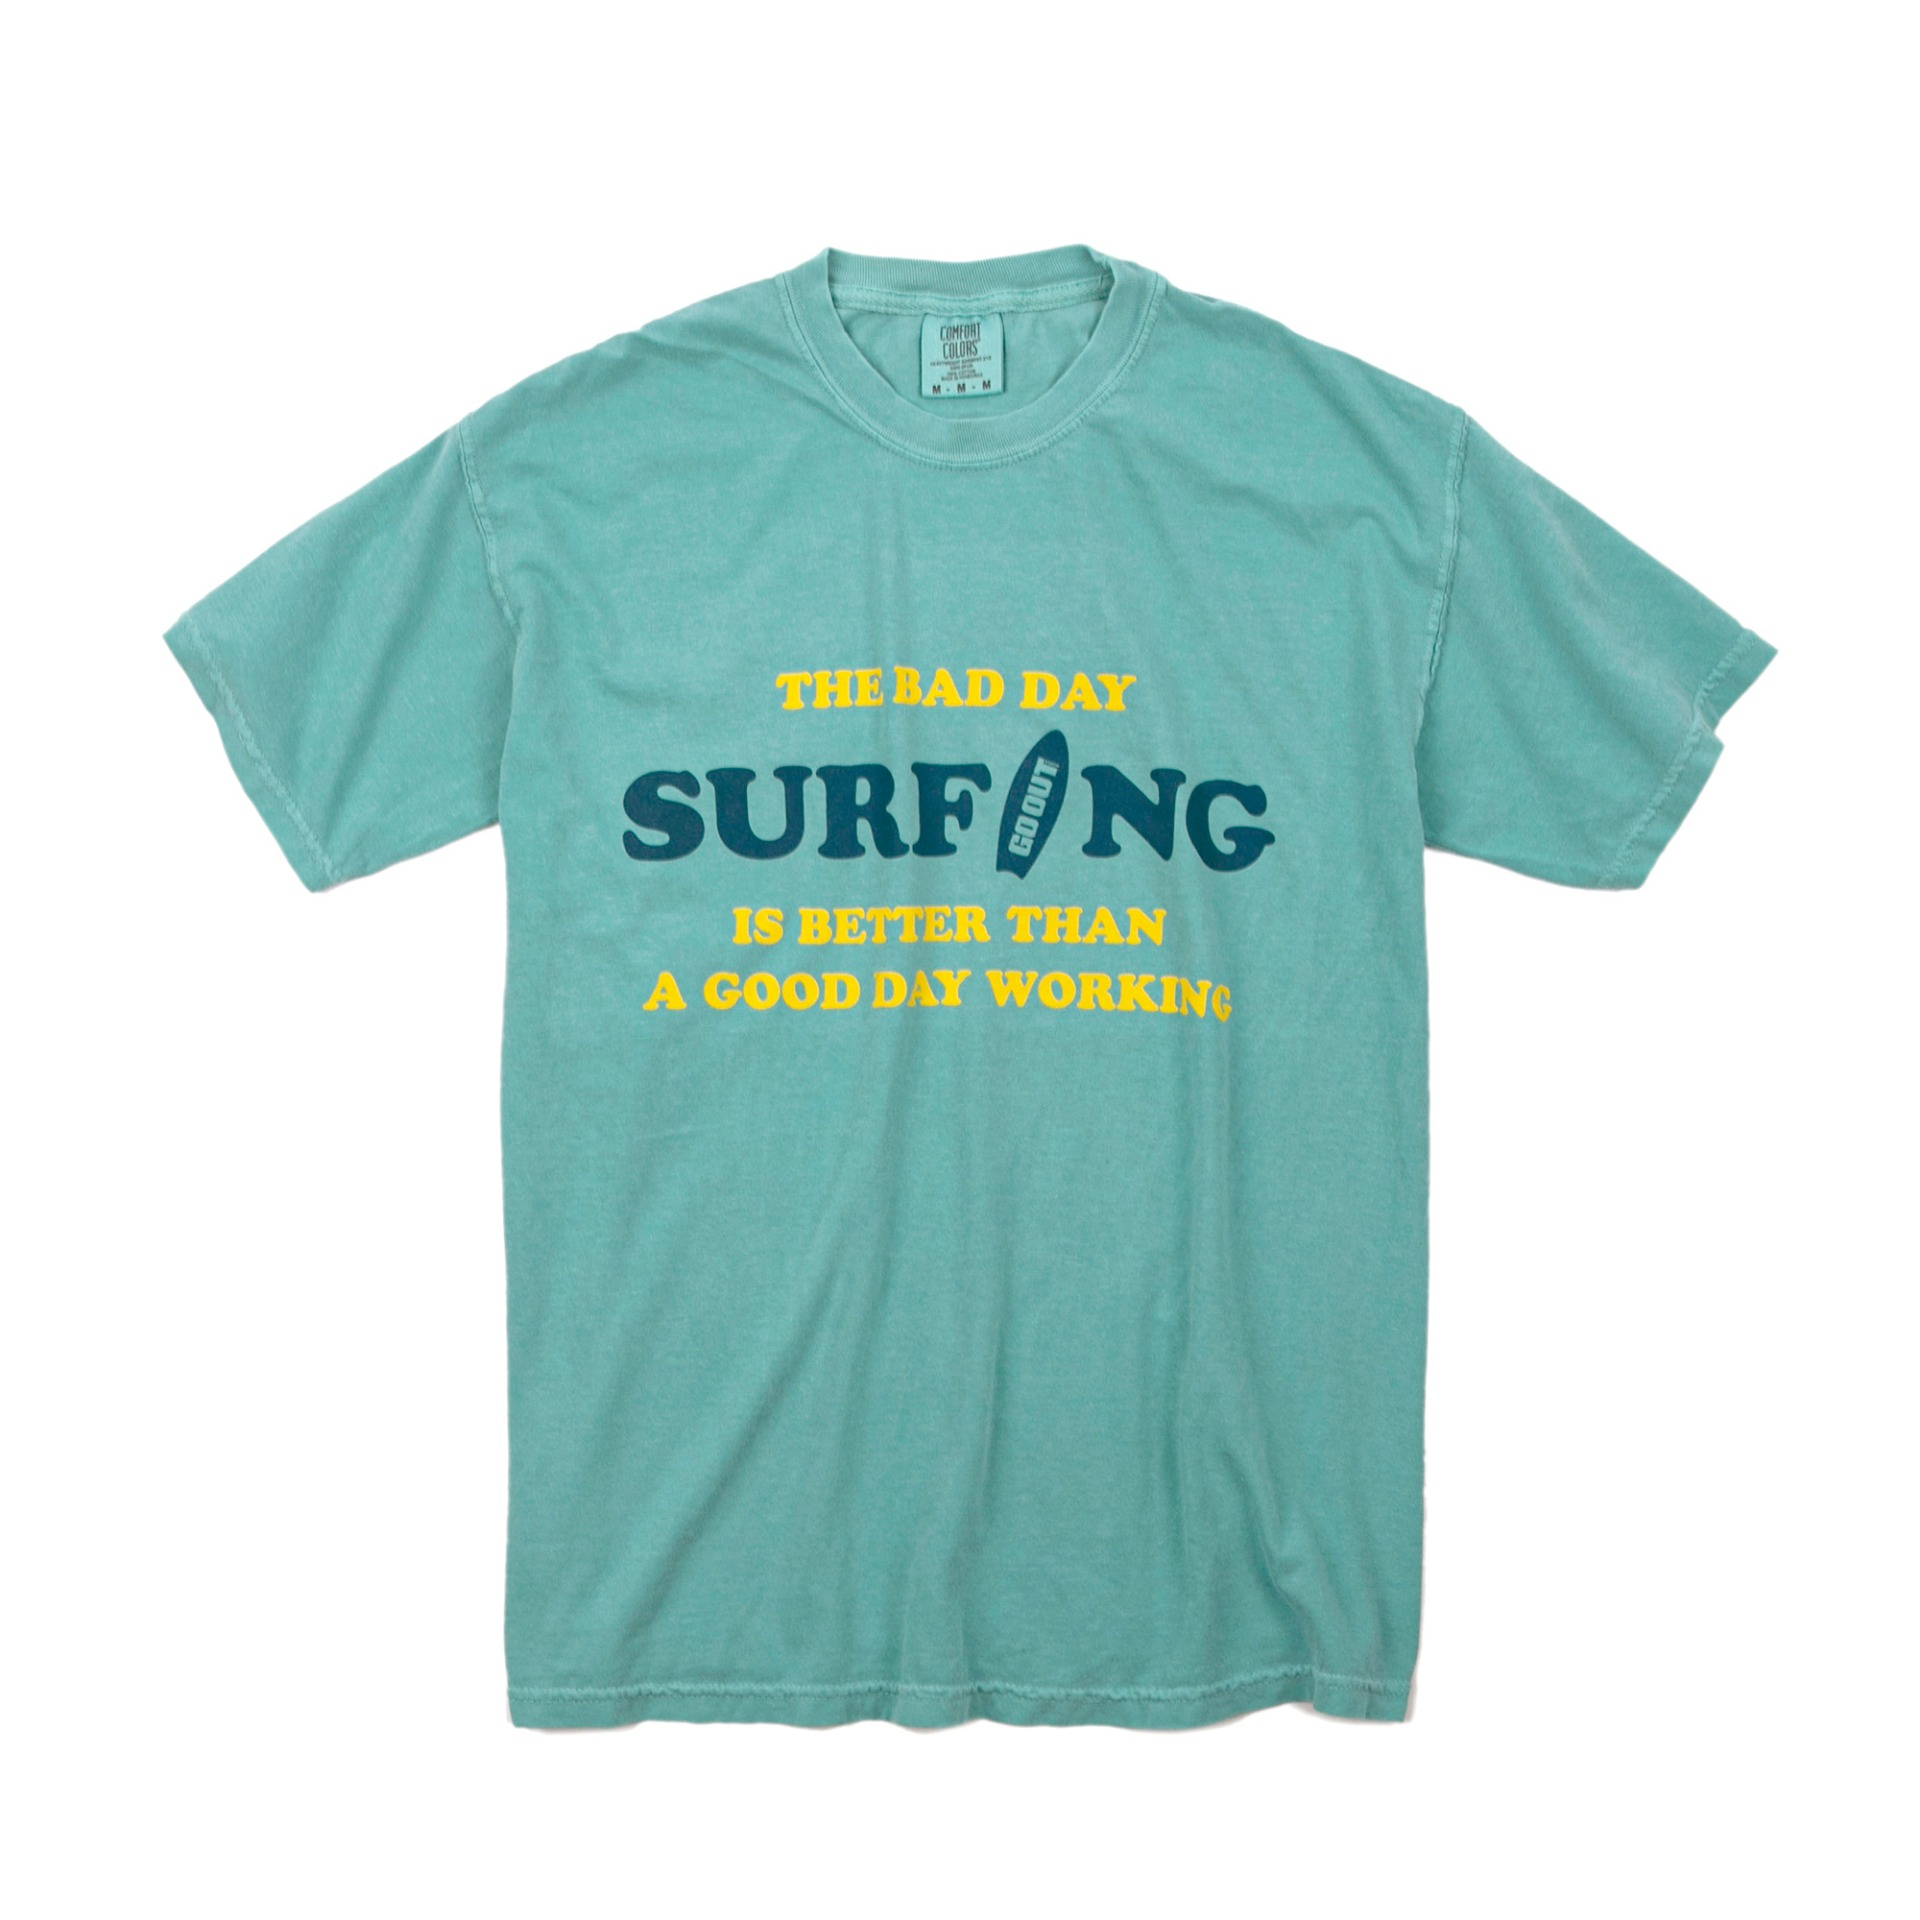 GARMENT DYEINGBAD DAY SURFING S/S T-SHIRTS(SEA)